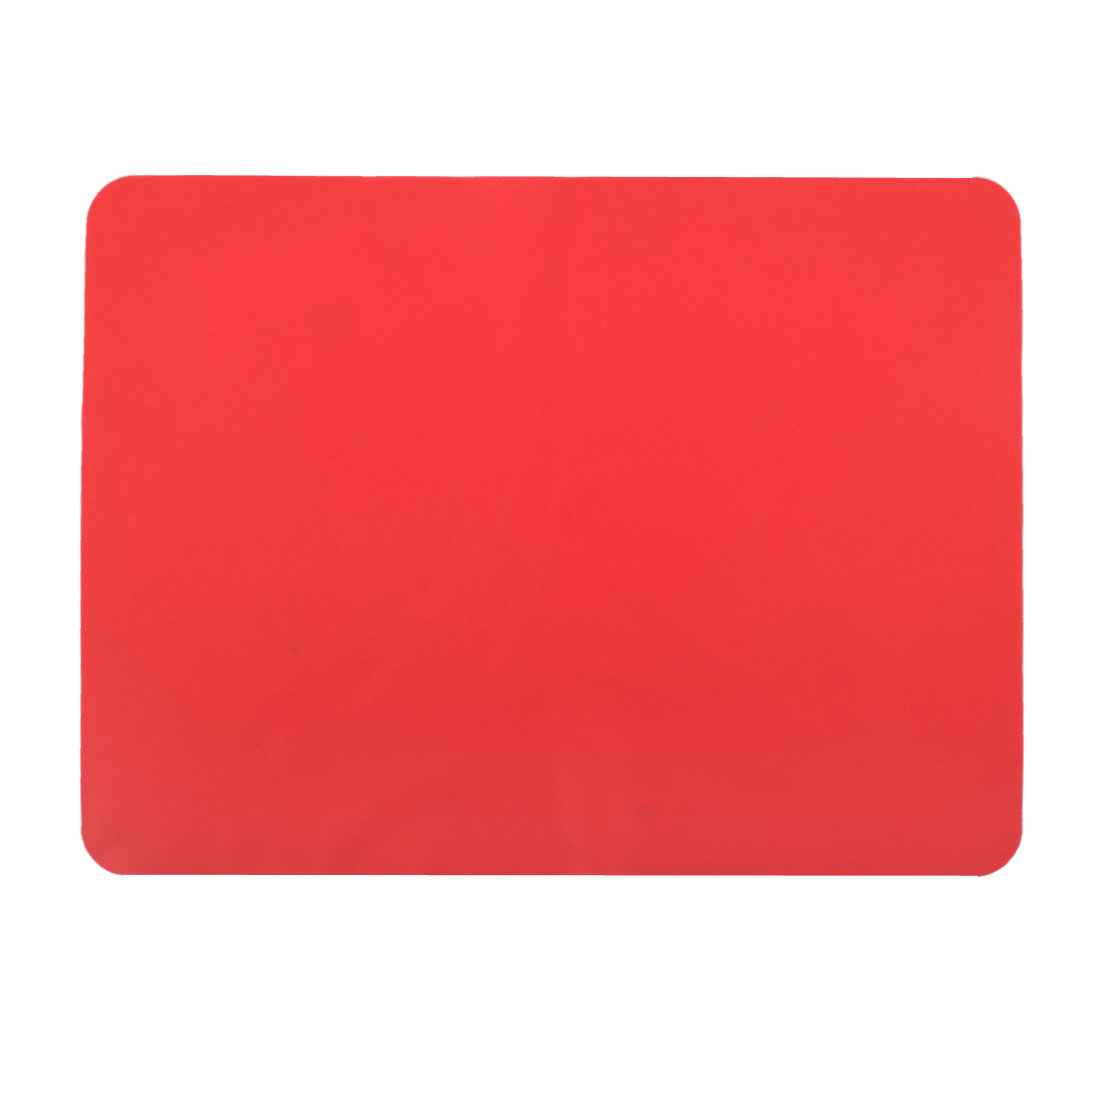 Home Restaurant Silicone Table Heat Resistant Baking Mat Cushion Placemat Red